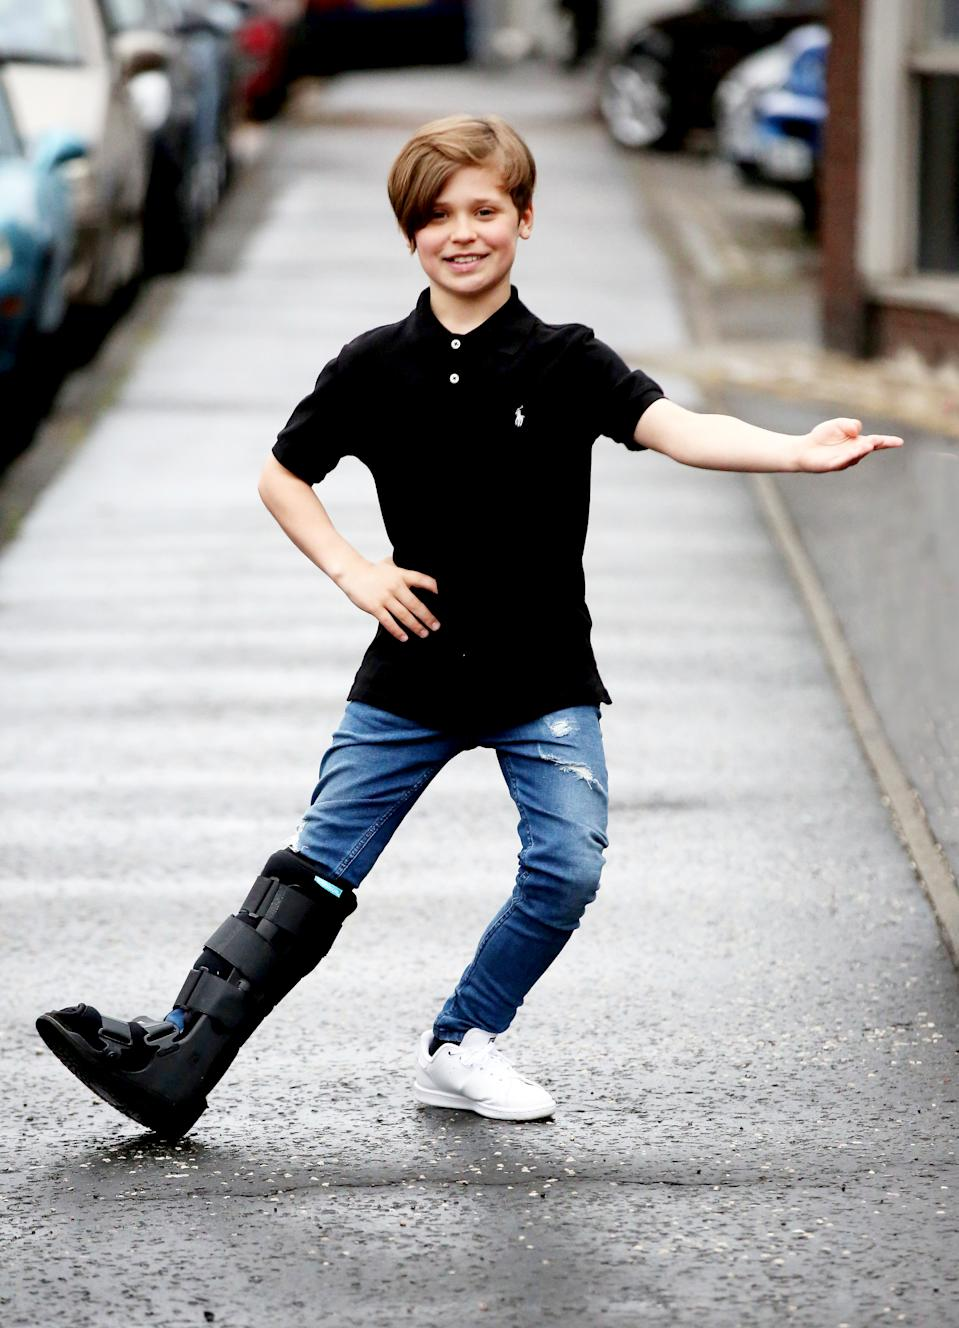 FILE PICTURE - Jack Burns a talented dancer from Greenock, Inverclyde.  A ballet dancer dubbed the next Billy Elliot has died suddenly aged just 14.  See SWNS story SWSCballet.  Jack Burns, an accomplished dancer who appeared in the TV drama Outlander in 2014, was found dead at home in Greenock, Inverclyde, on December 1.  He won a place at ballet school aged nine, appeared in ITV thriller Plain Sight, starred opposite Duncan James of Blue and was also in several BBC productions.   Jack trained at the Elite Academy of Dance in Greenock and the Royal Conservatoire in Glasgow and drew comparisons with Billy Elliot, a role he auditioned for in 2015.